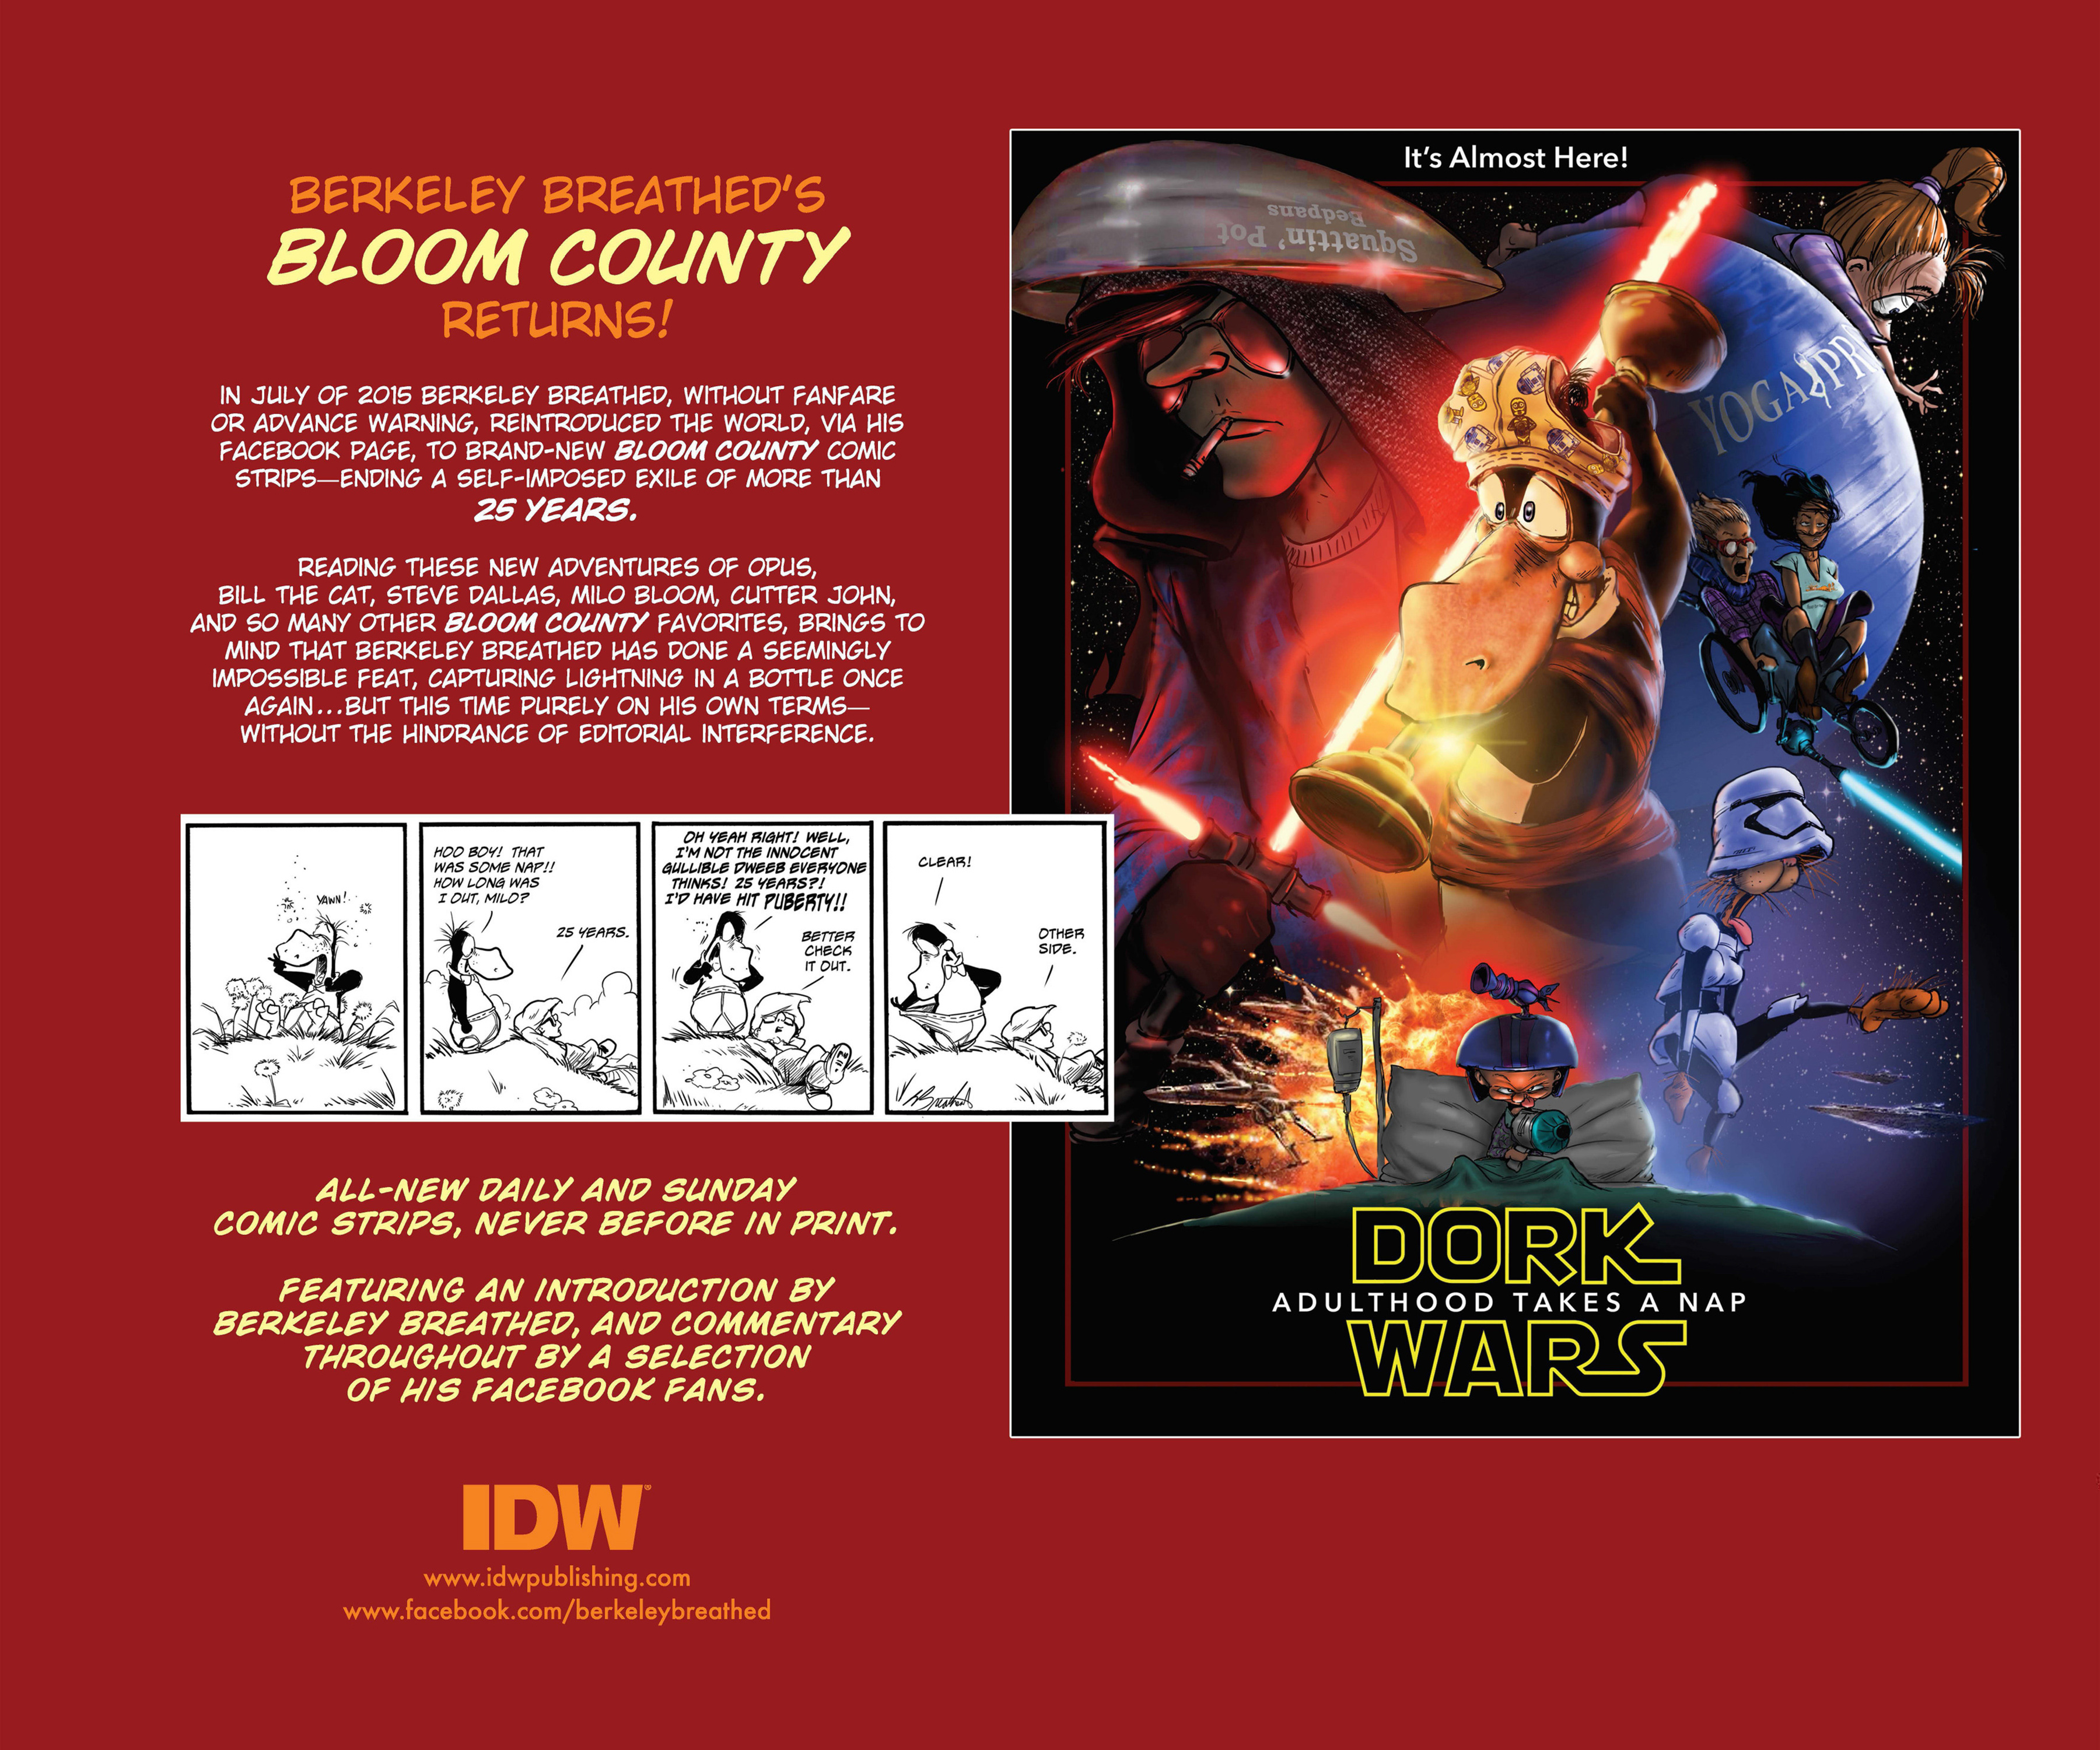 Read online Bloom County Episode XI: A New Hope comic -  Issue # Full - 148